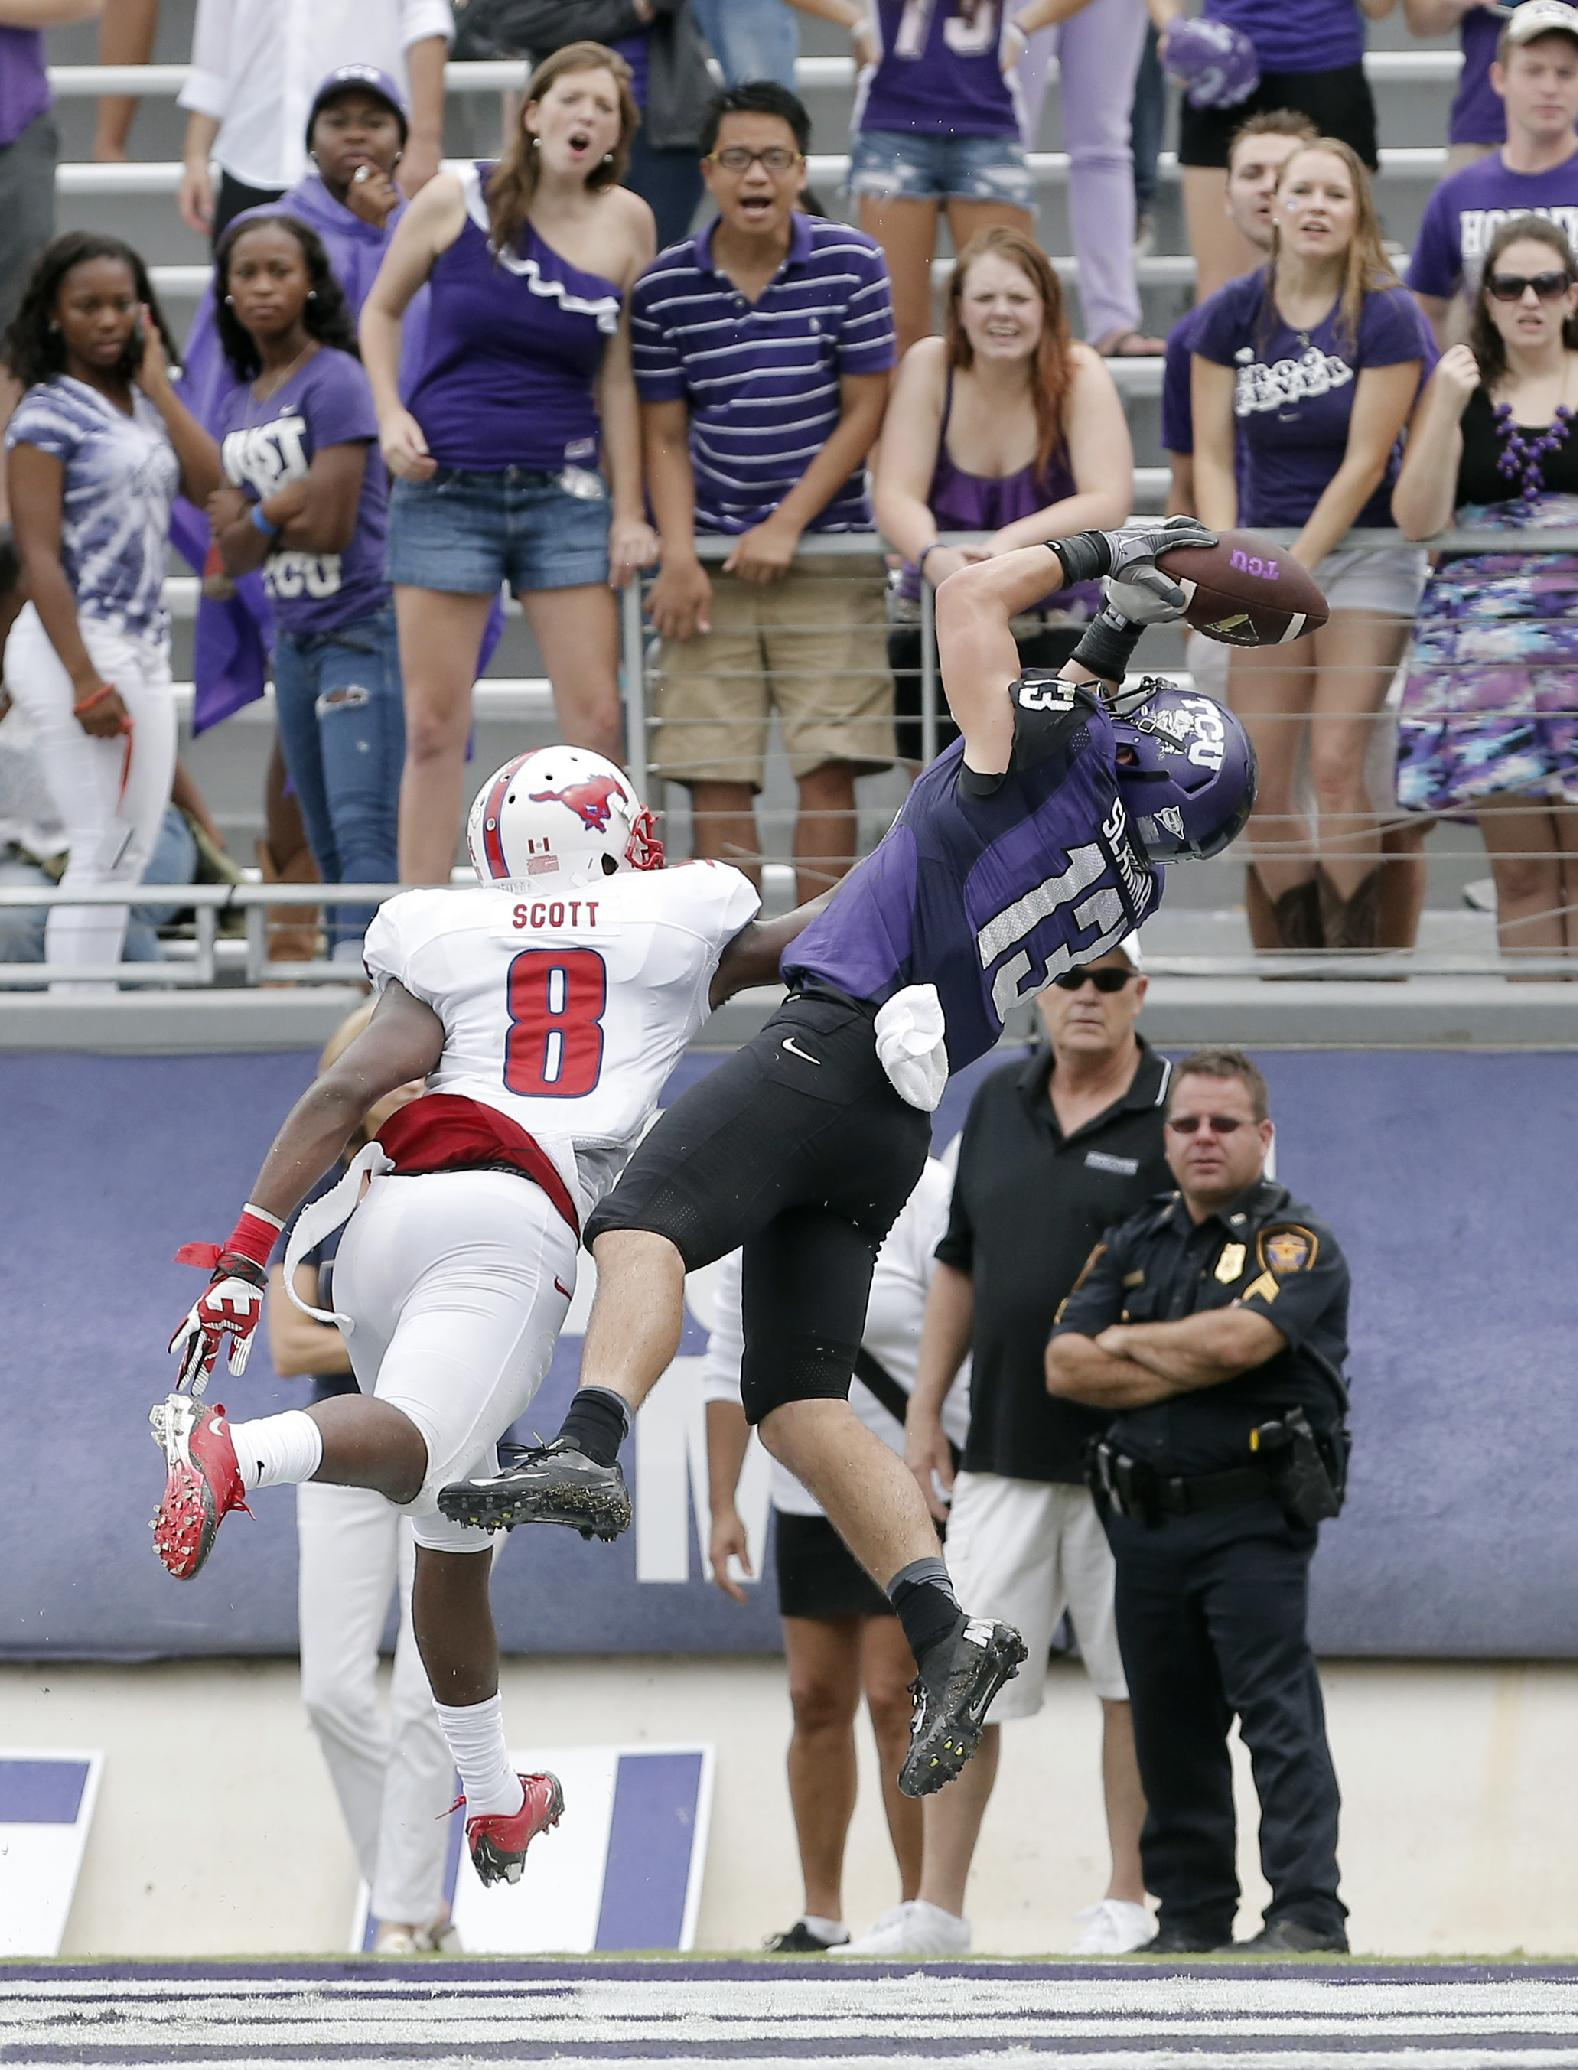 TCU wide receiver Ty Slanina (13) catches a pass for a touchdown as SMU defensive back Jay Scott (8) defends during the second half of an NCAA college football game Saturday, Sept. 28, 2013, in Fort Worth, Texas. TCU won 48-17